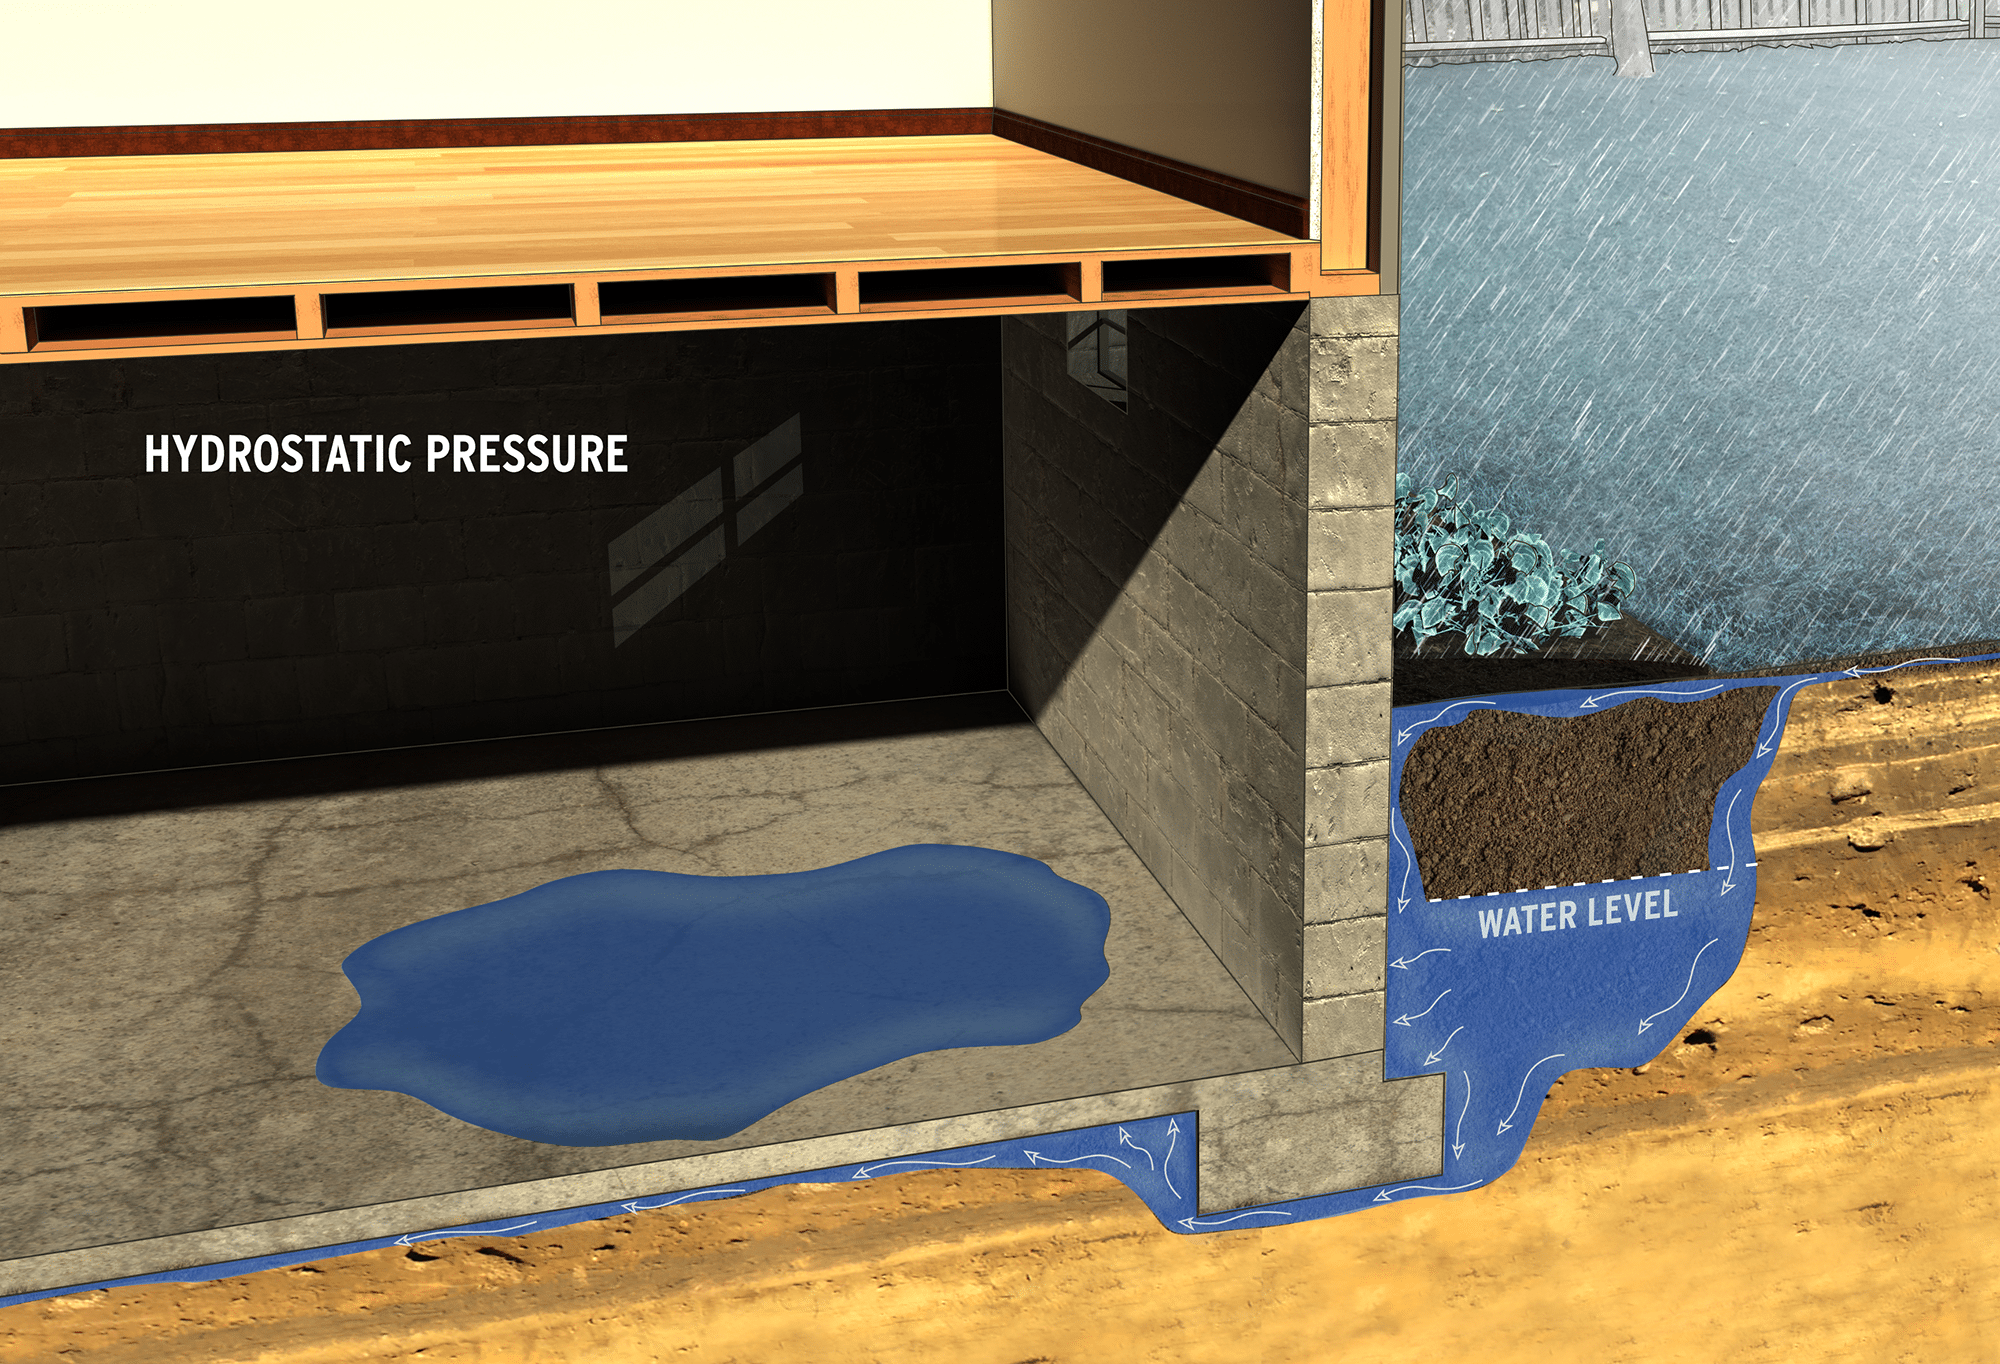 3D model of hydrostatic pressure